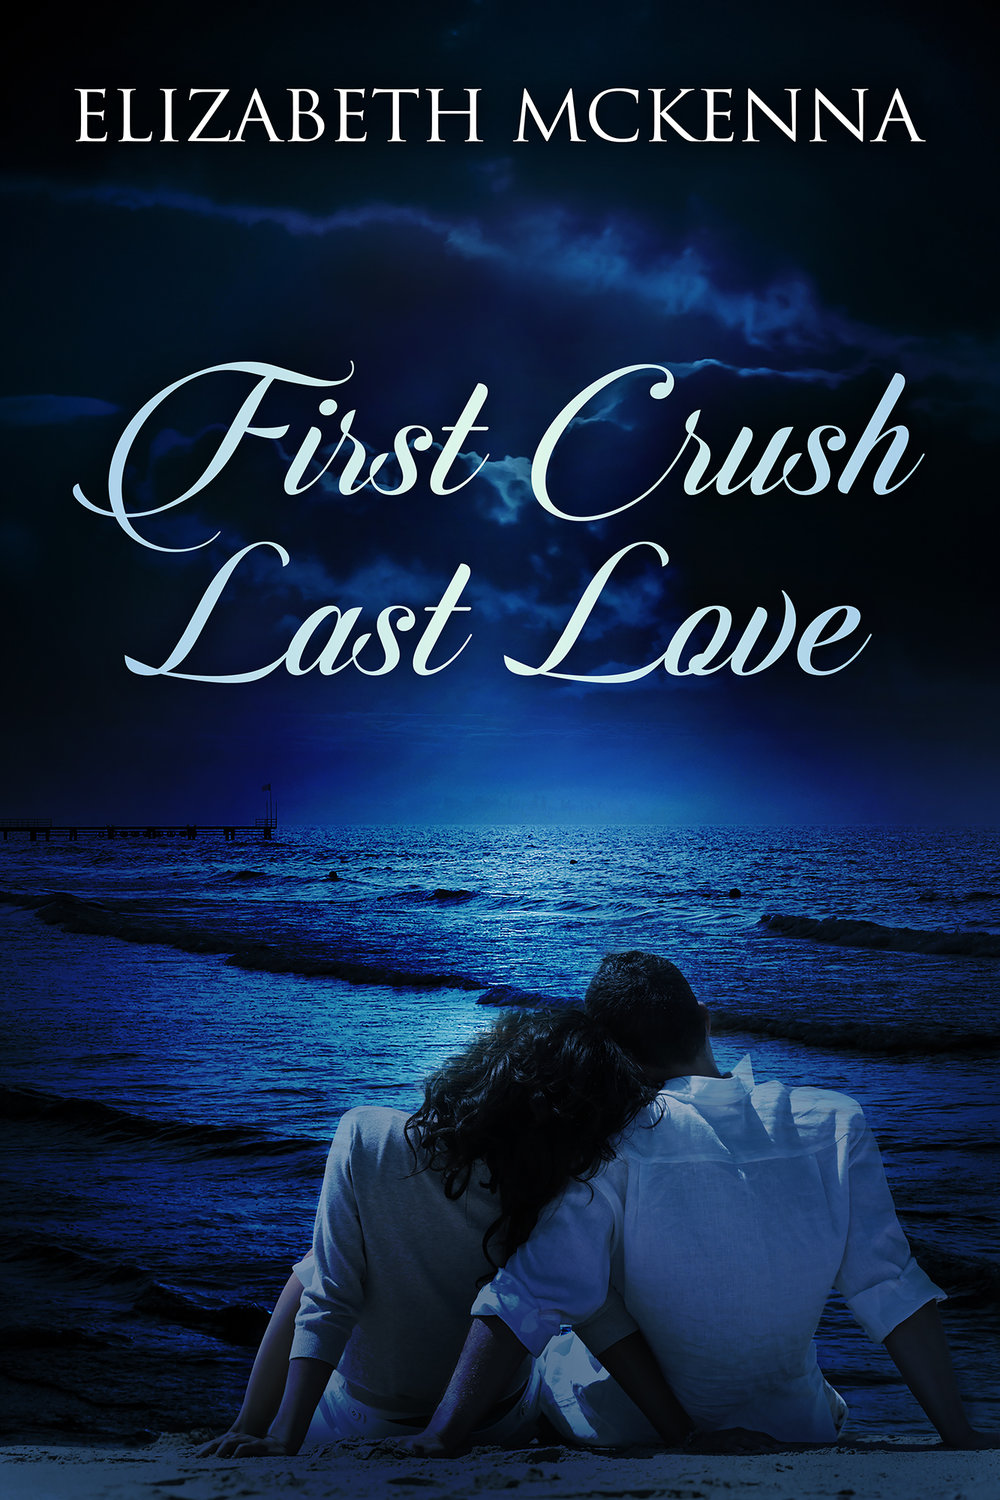 First Crush Last Love - eBook small.jpg